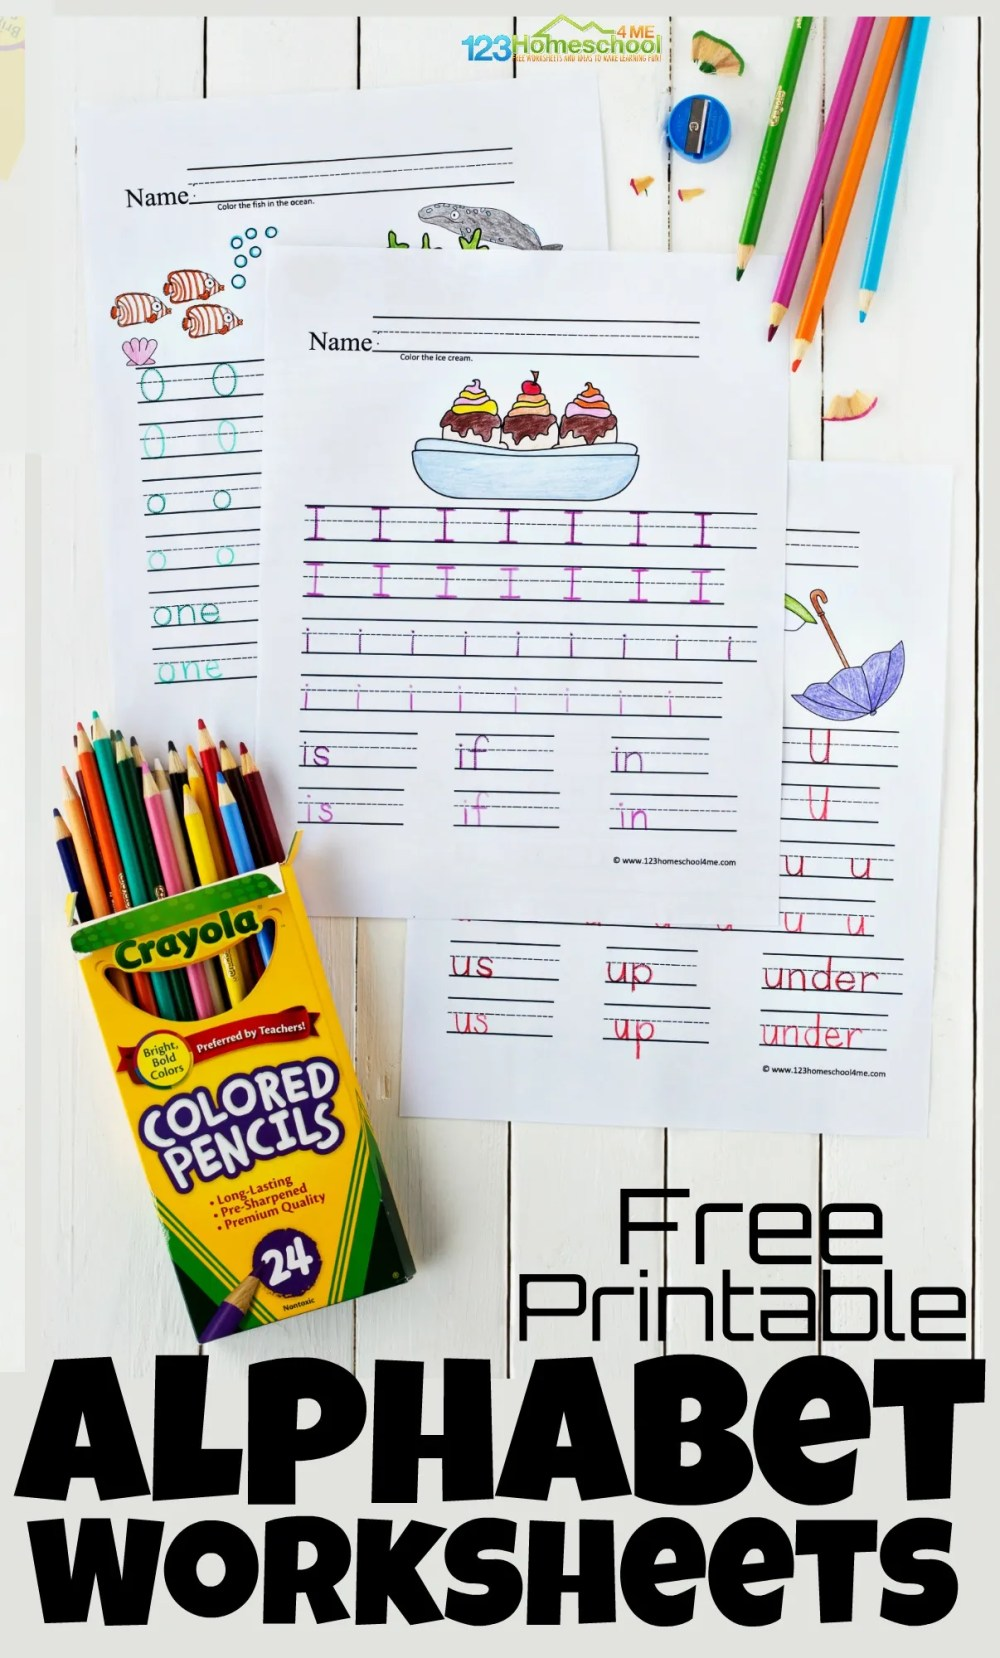 medium resolution of Free Printable Alphabet Worksheets